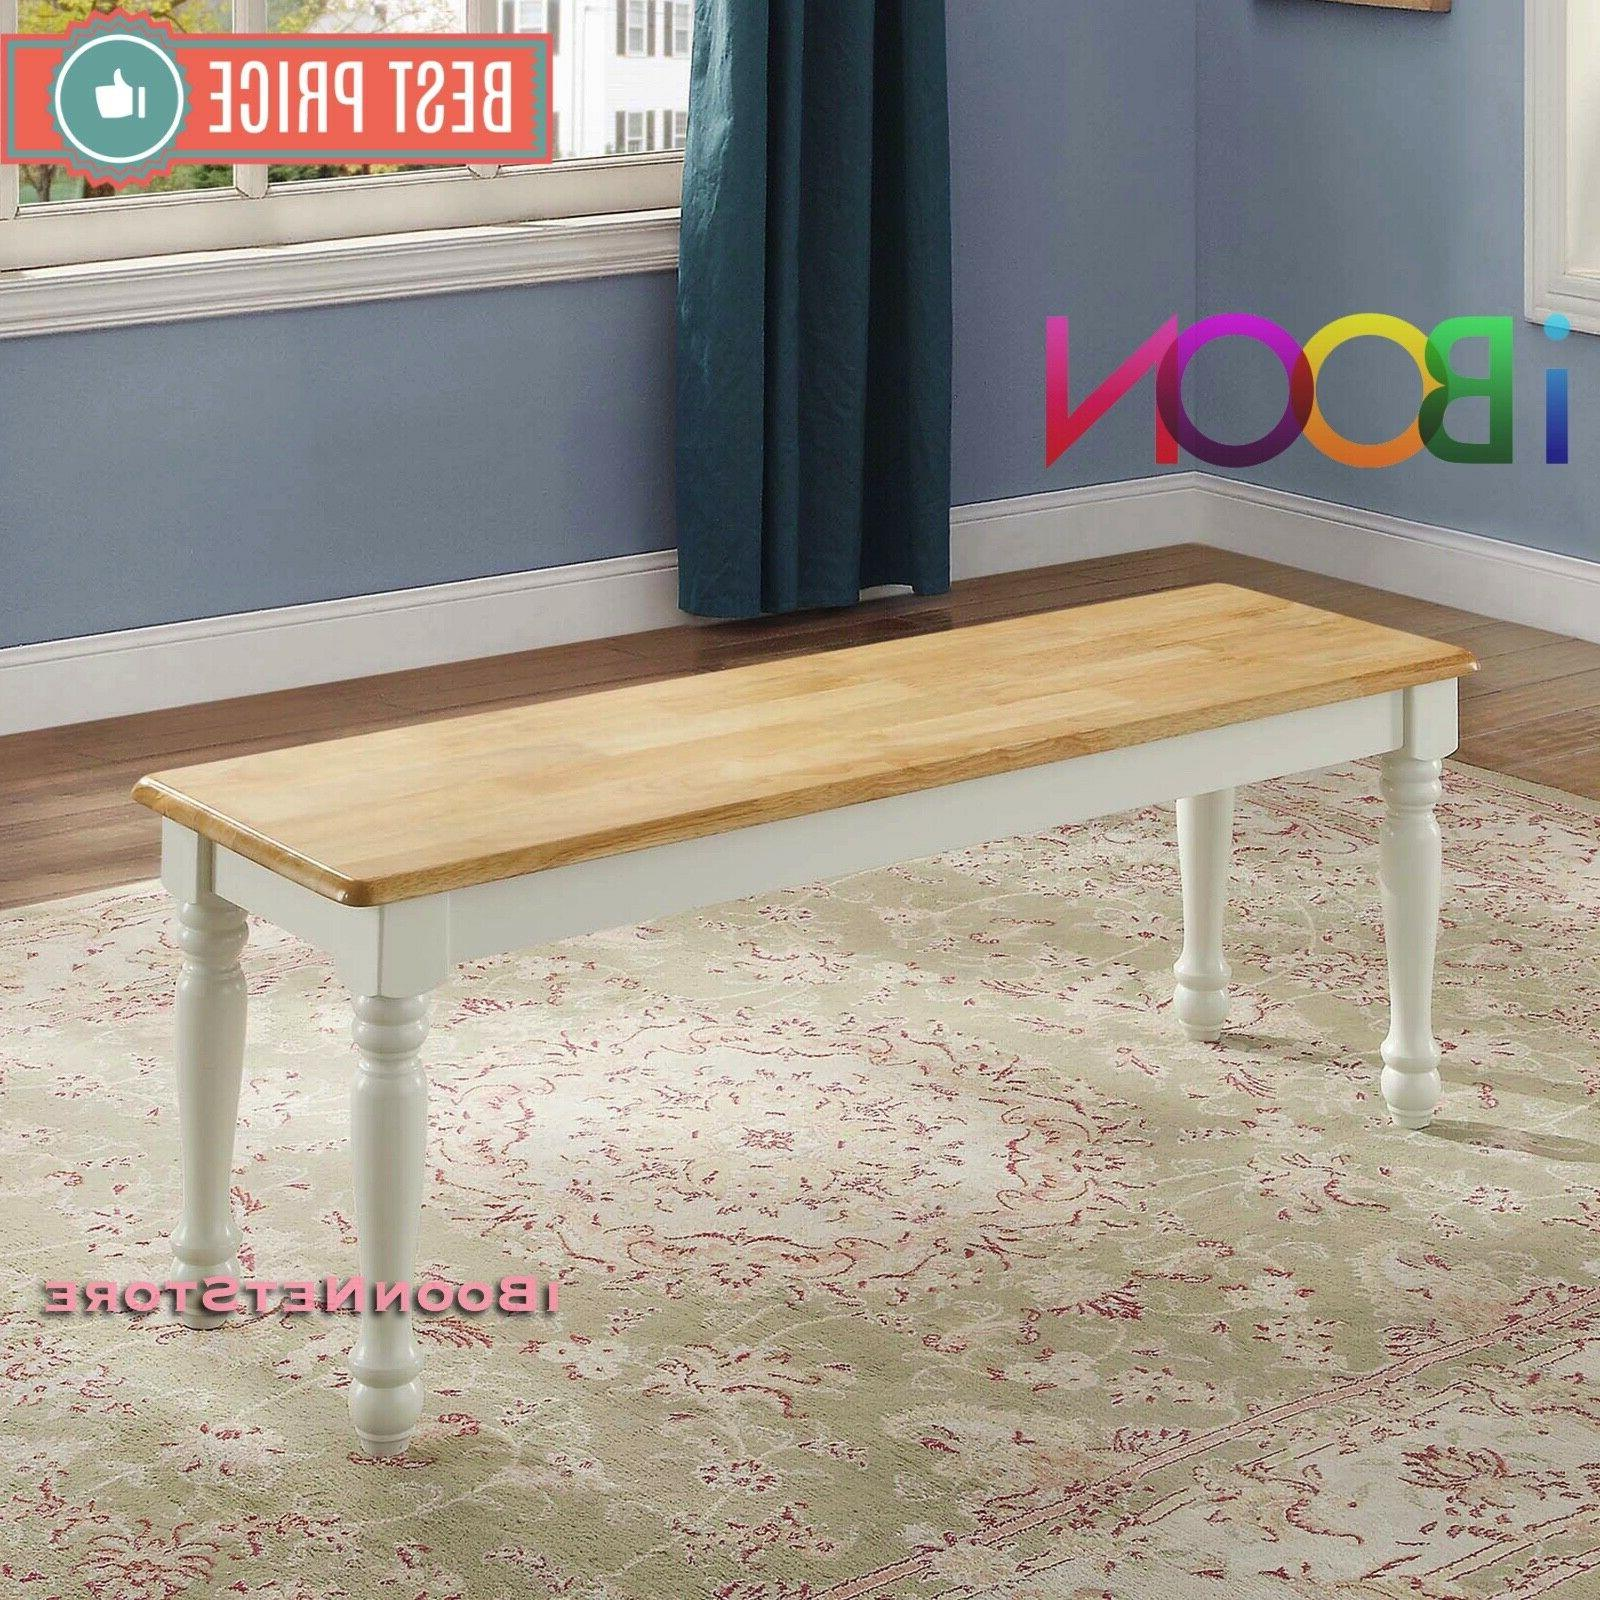 Wood Dinning Table Bench Seat Home Furniture Dining Room Whi